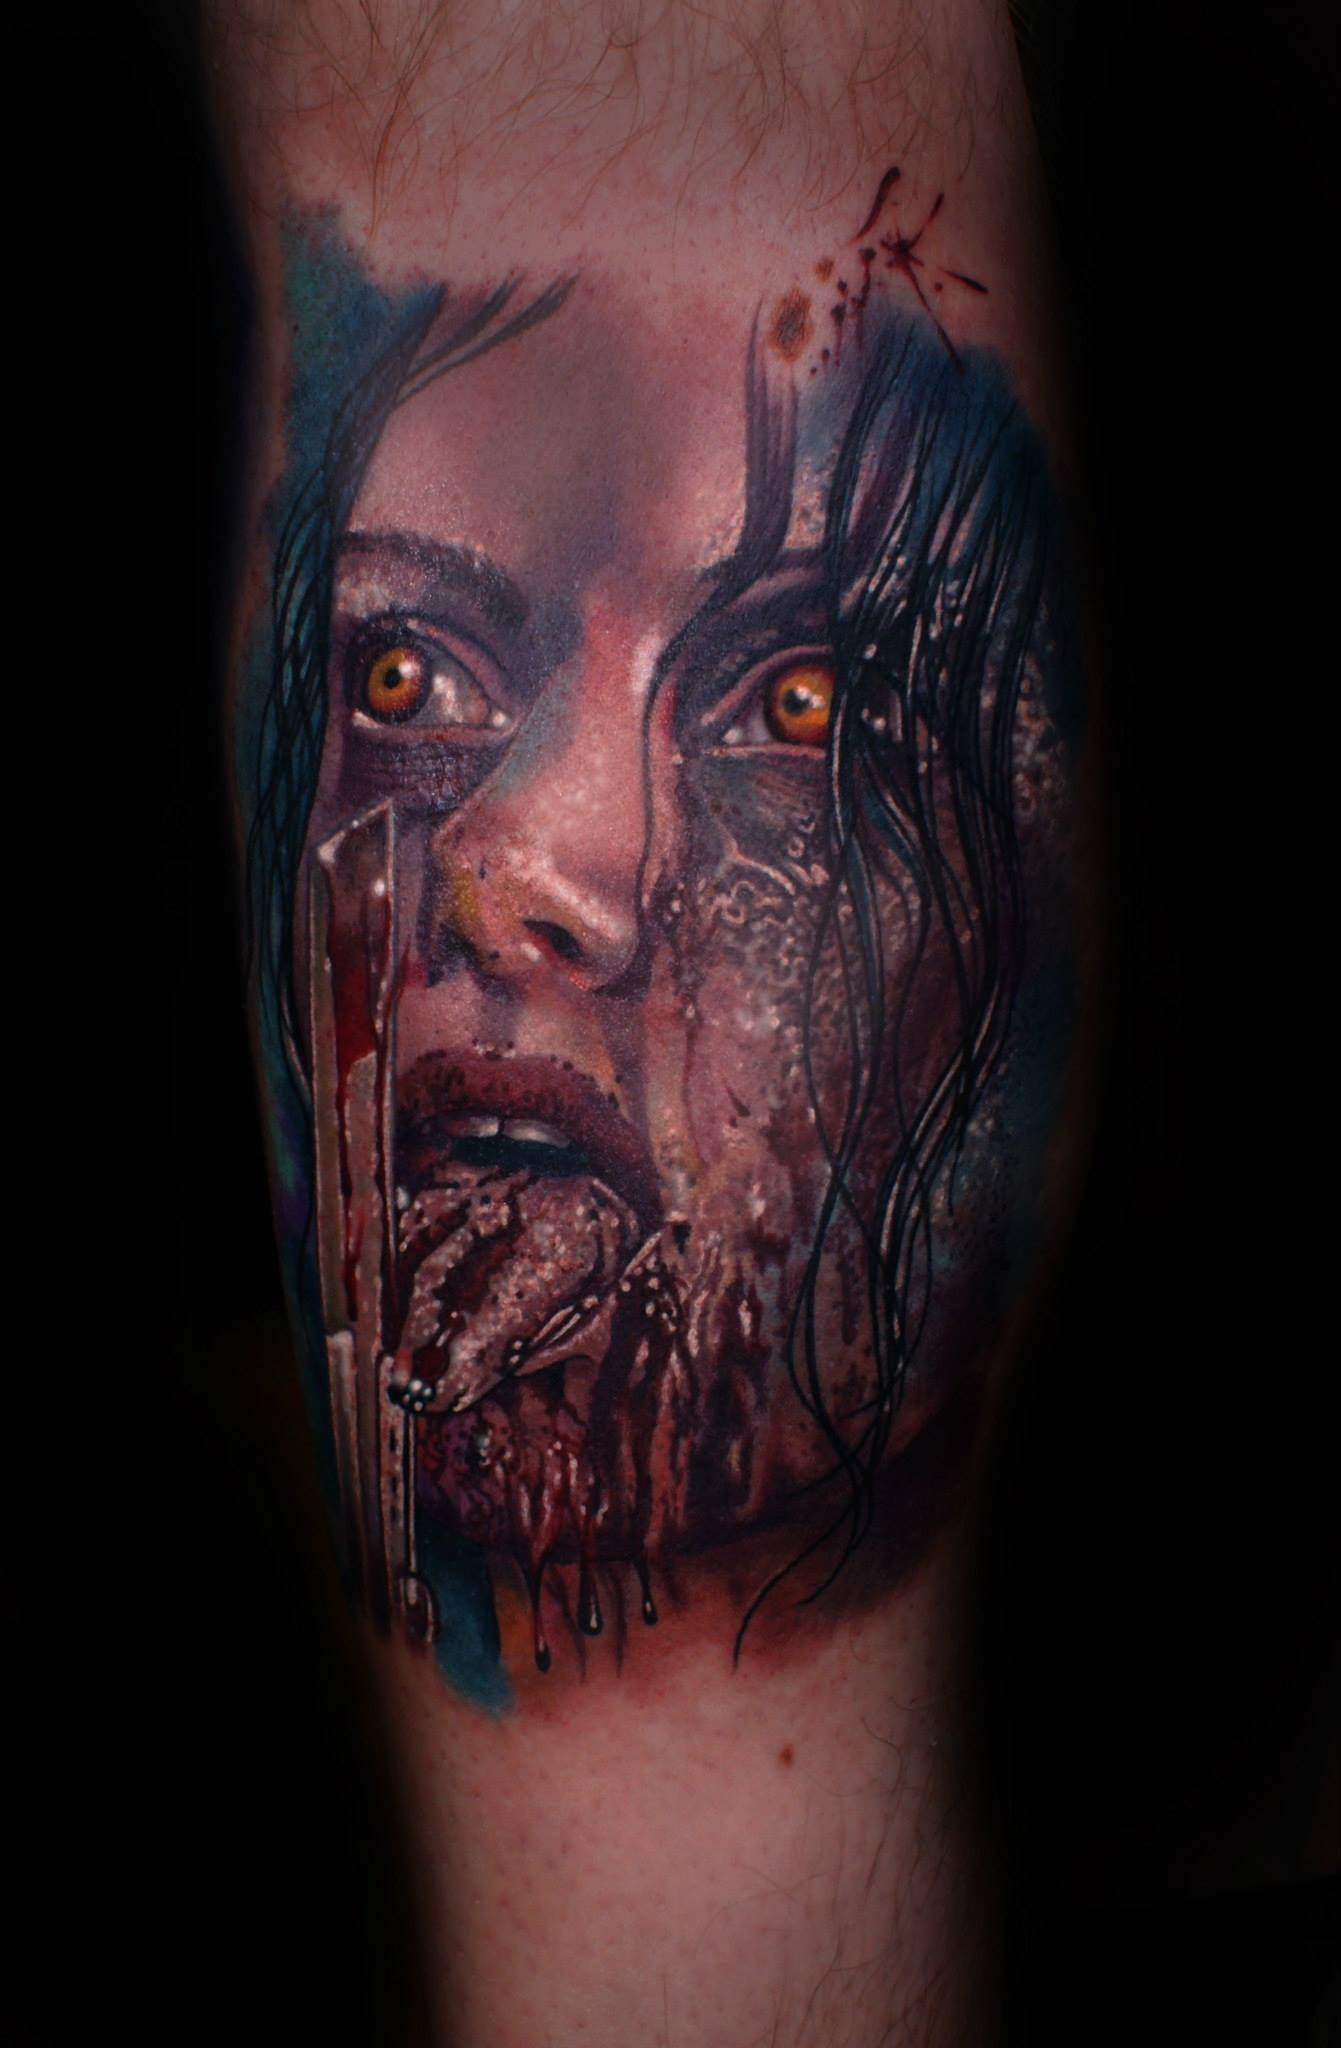 A Zombie Girl Drools Over Your Flesh And Blood In This Gory Horror